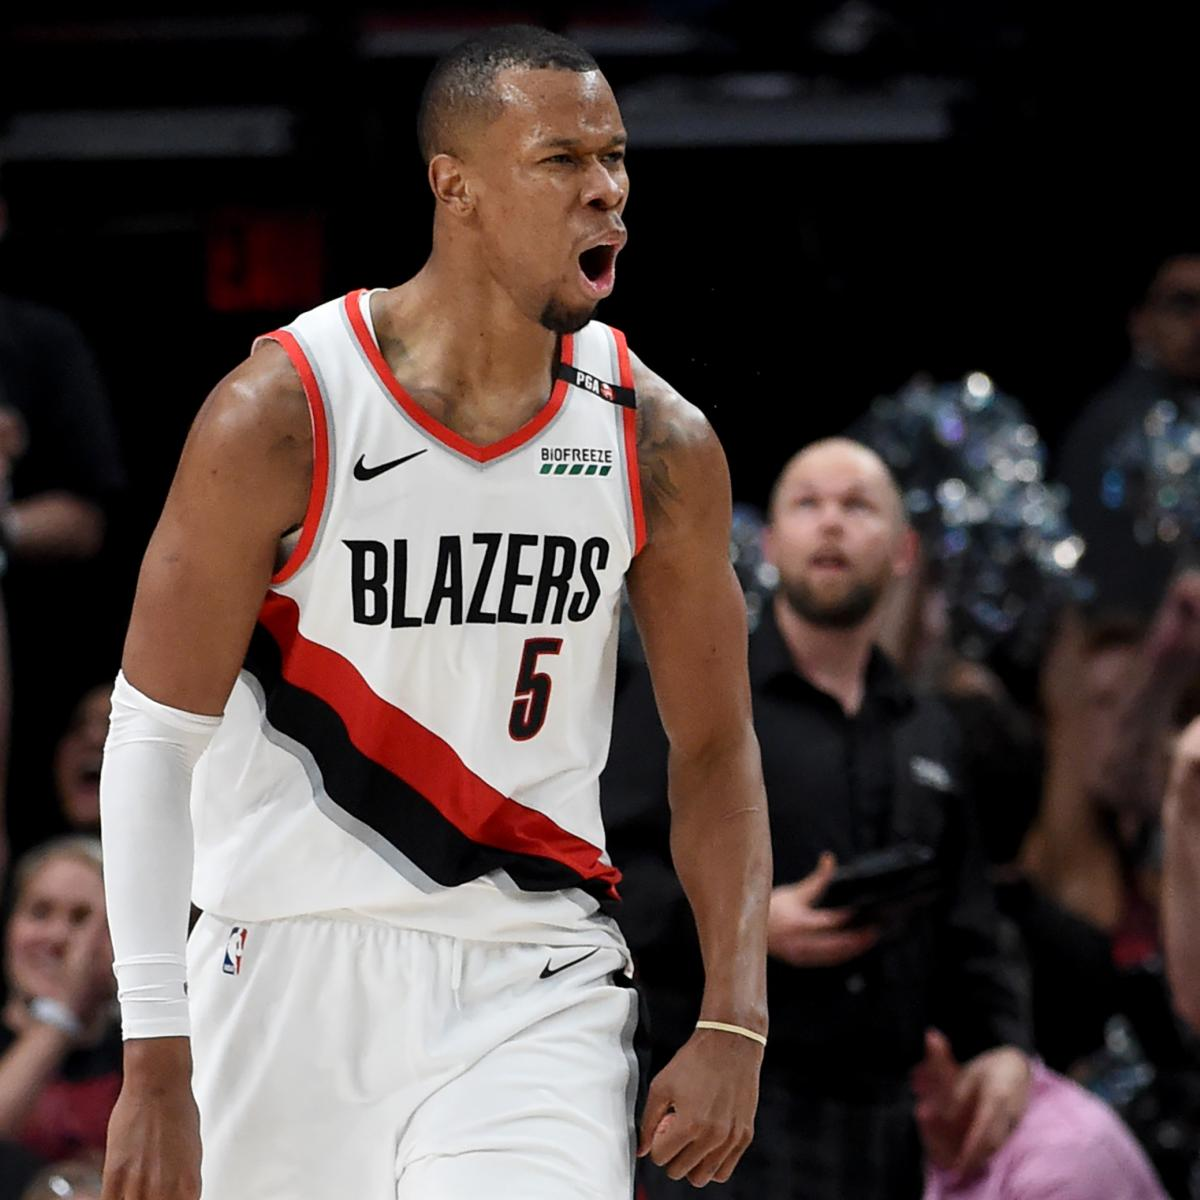 Portland Trail Blazers swingman Rodney Hood suffered a hyperextension of his left knee in Sunday's game against the Denver Nuggets in the third quarter, the team announced ...